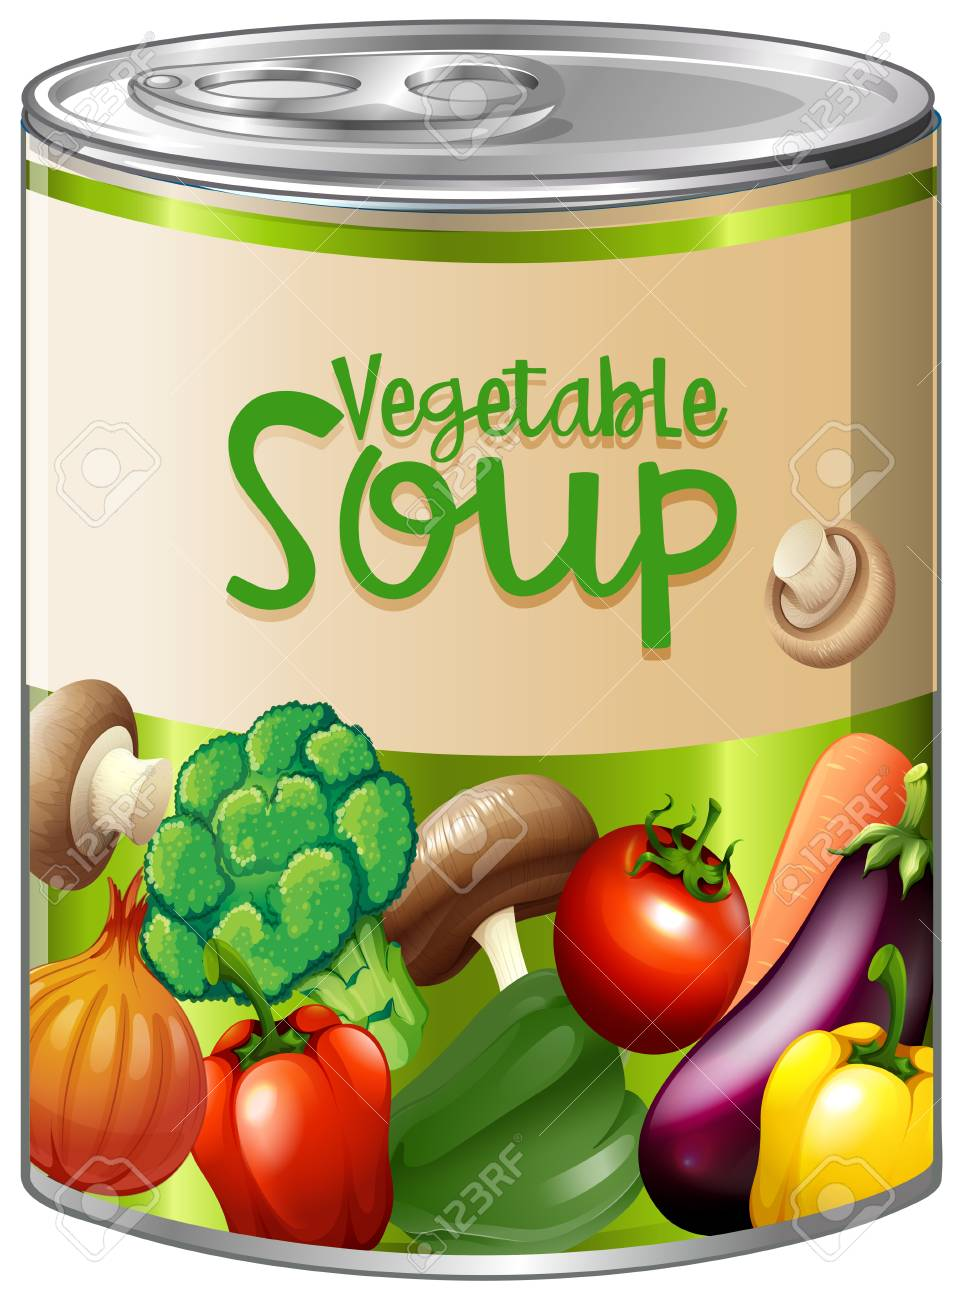 Vegetable soup in aluminum can illustration..